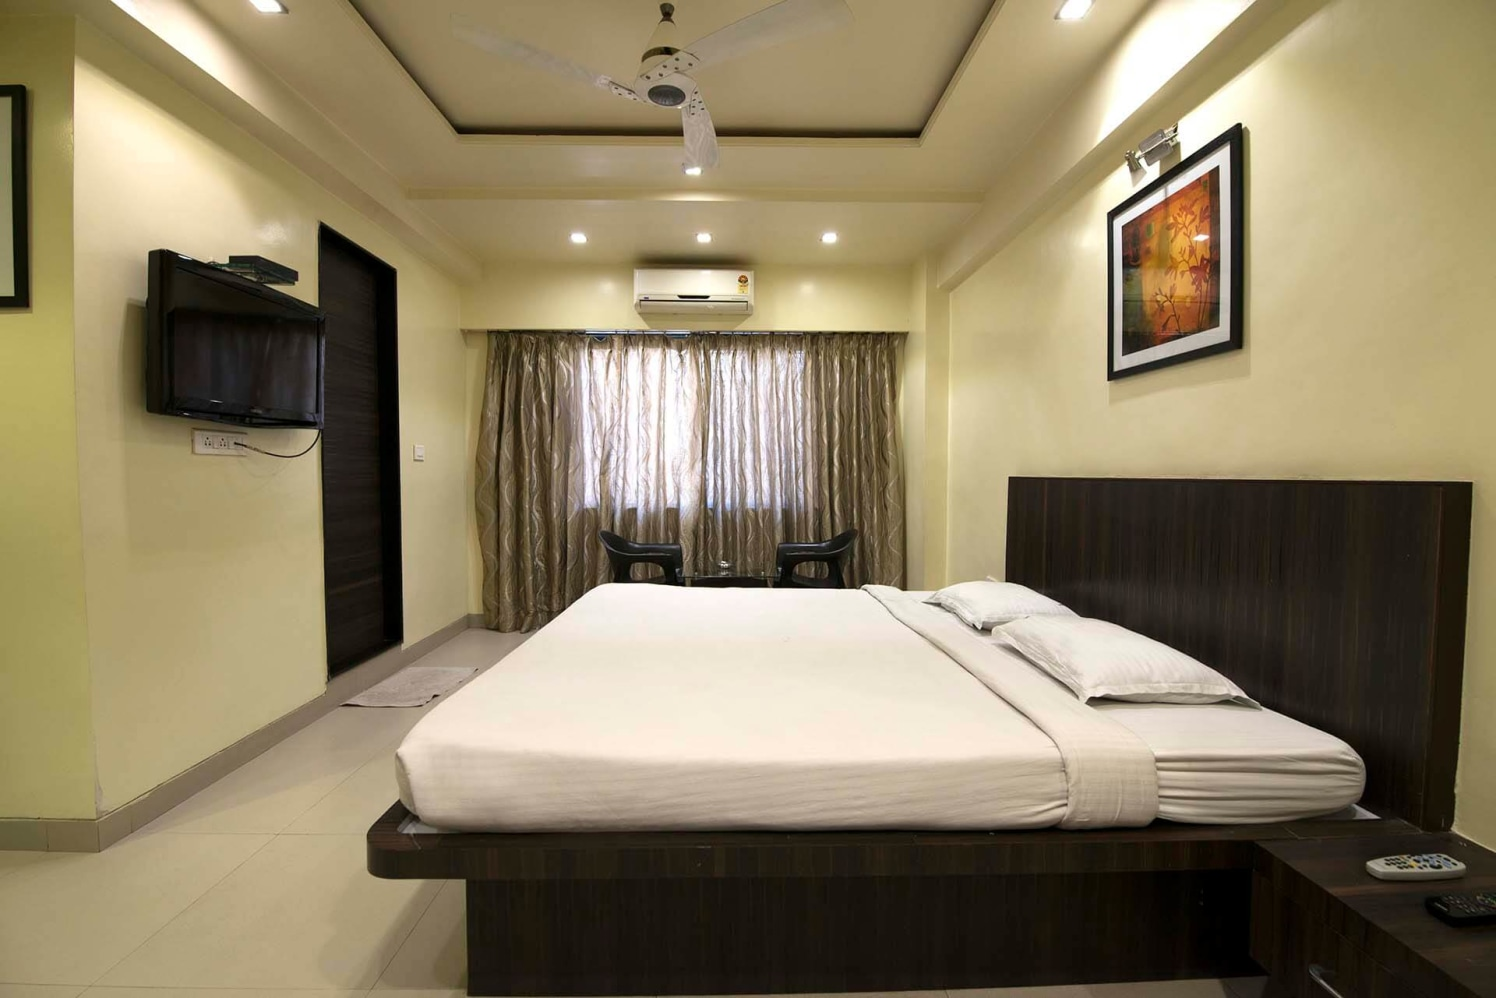 Simple Bedroom with Wooden Finished Queen Size Bed and Marble Flooring by Trupti Ladda Bedroom Minimalistic | Interior Design Photos & Ideas